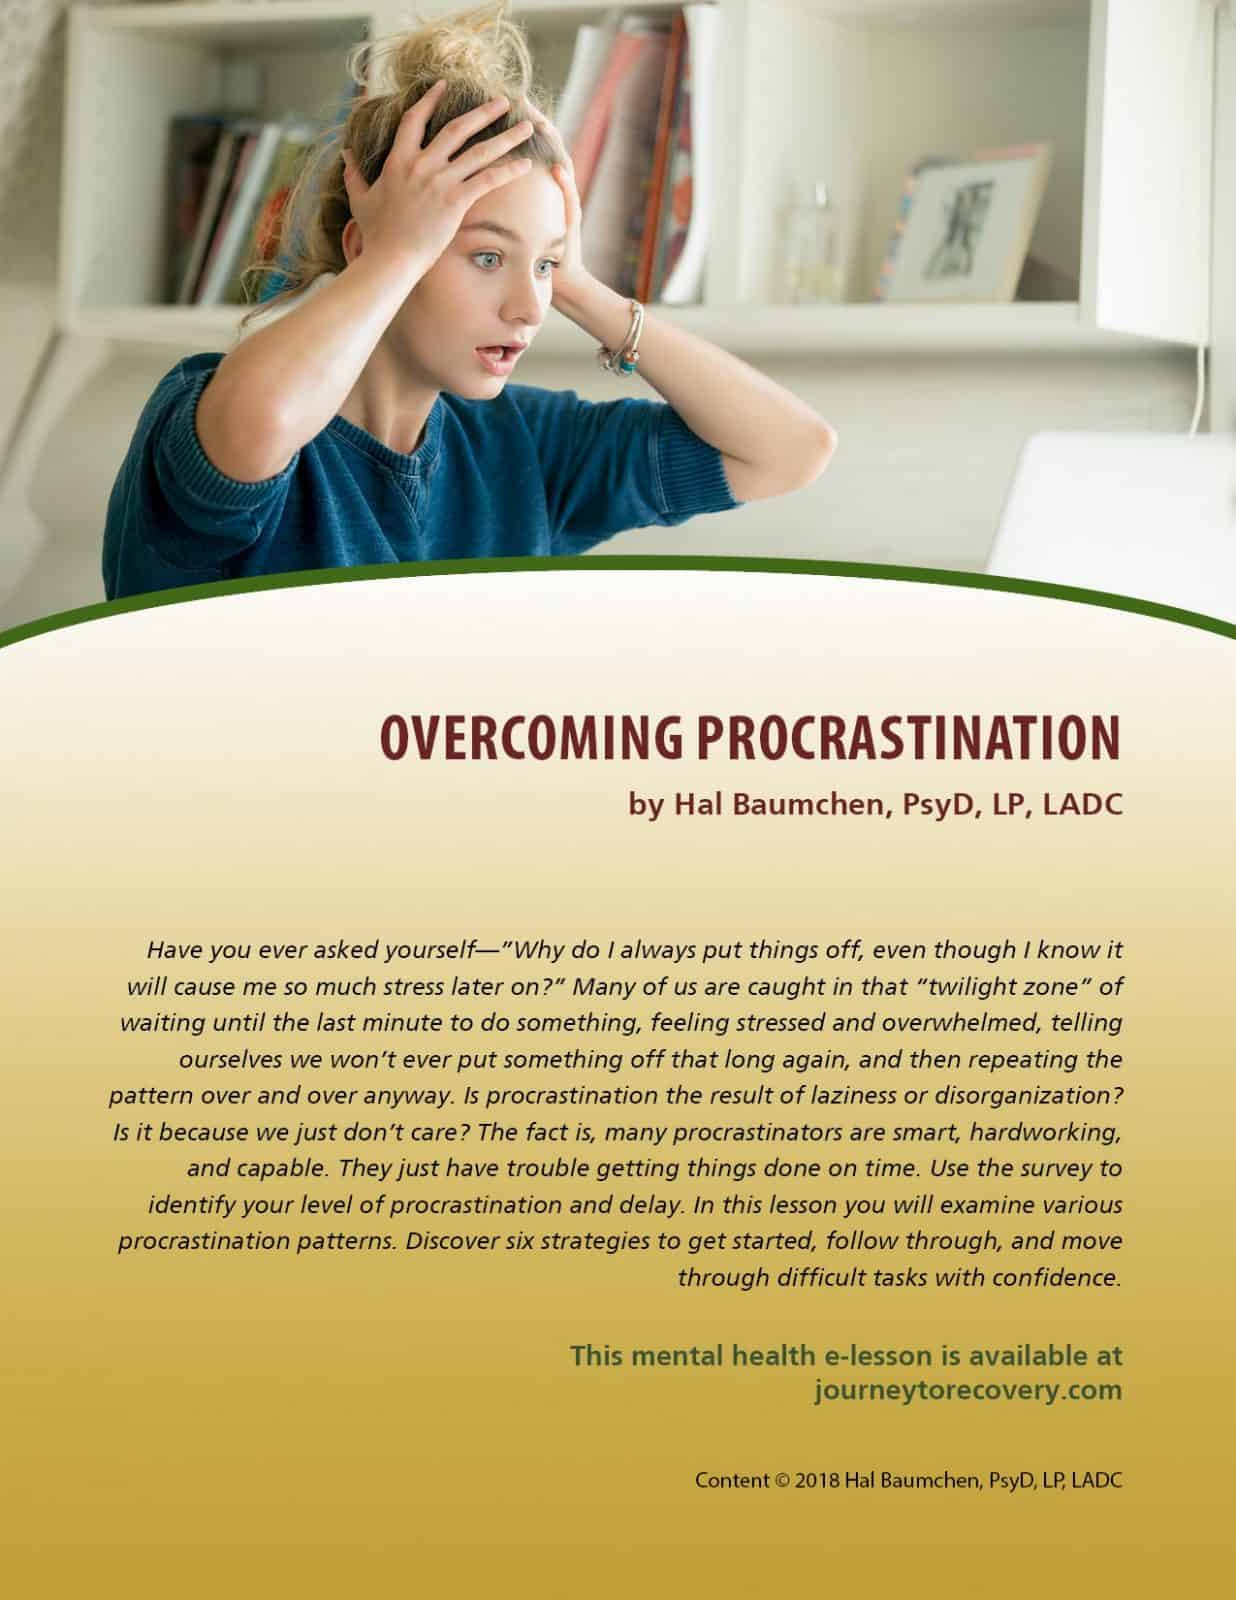 Overcoming Procrastination (MH Lesson)